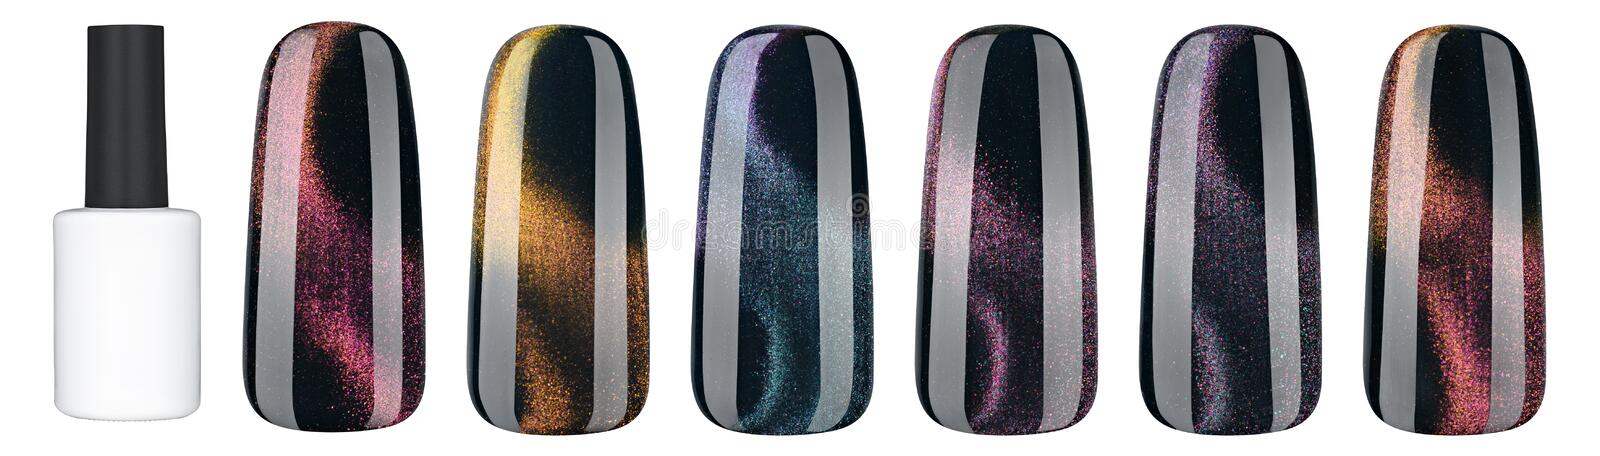 Nail polish in different fashion color. Colorful cats eye 3D nail lacquer in tips isolated white background stock image